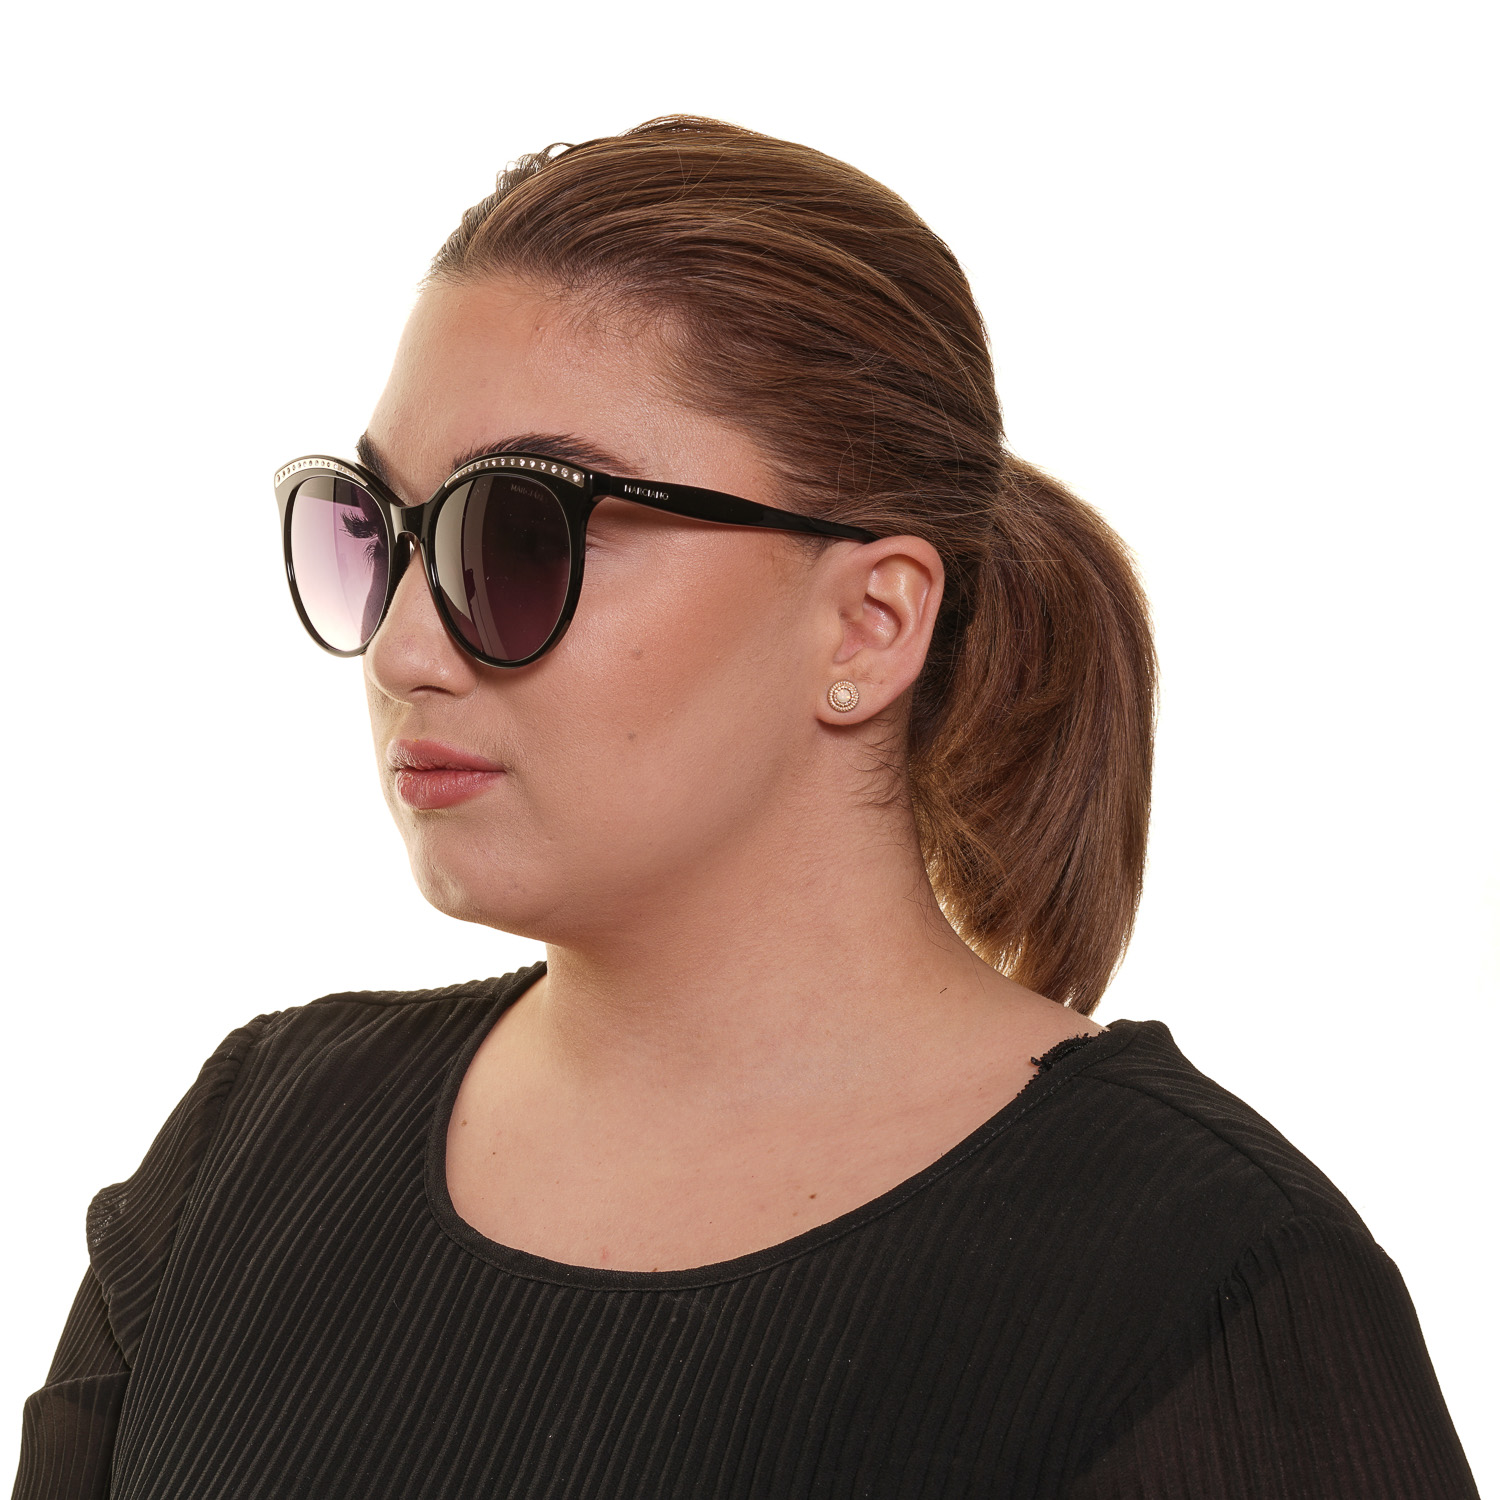 Guess By Marciano Sunglasses GM0794 01B 56 Black